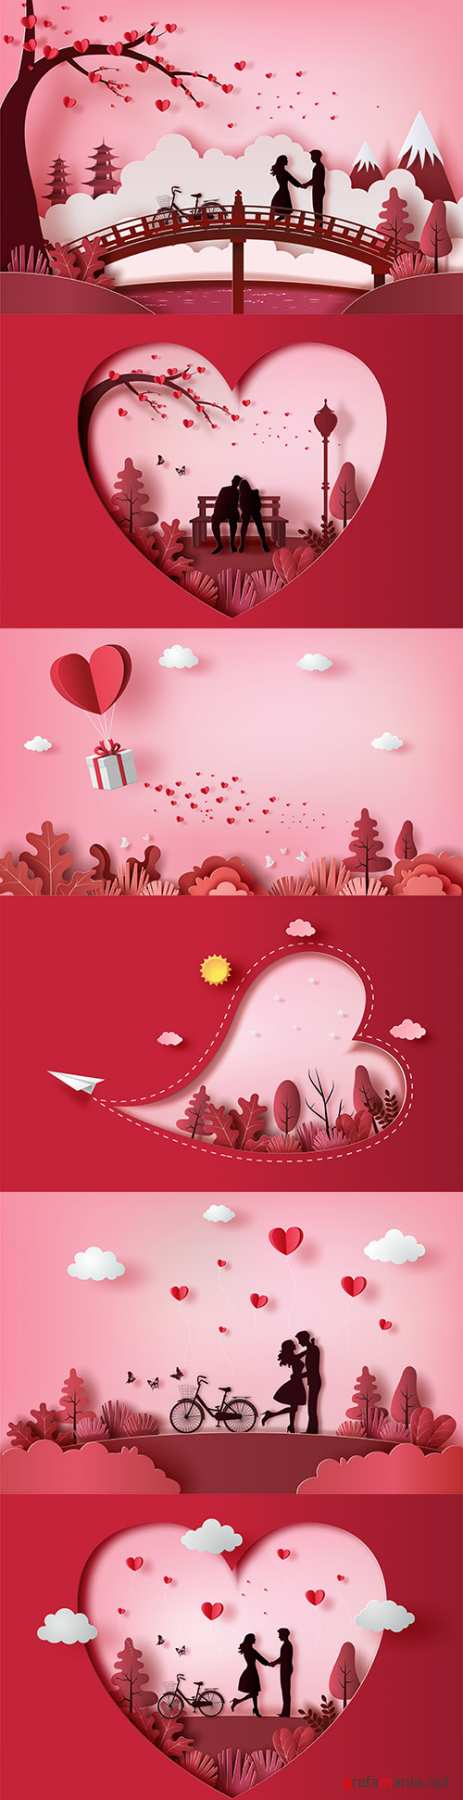 Happy Valentine's Day romantic decorative illustrations 35